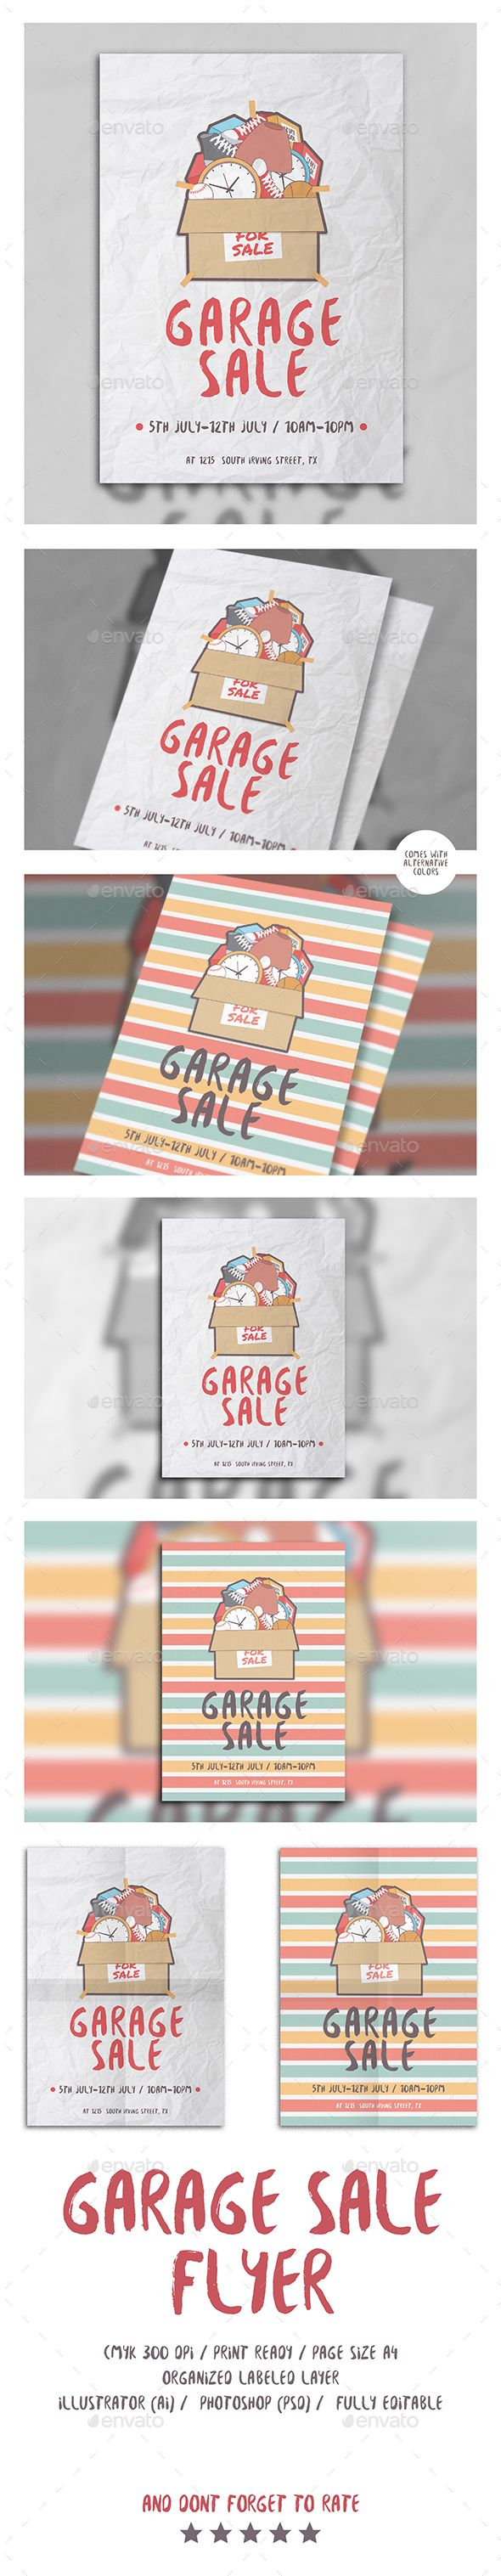 13 best market images on Pinterest | Garage, Flyers and Graphic ...